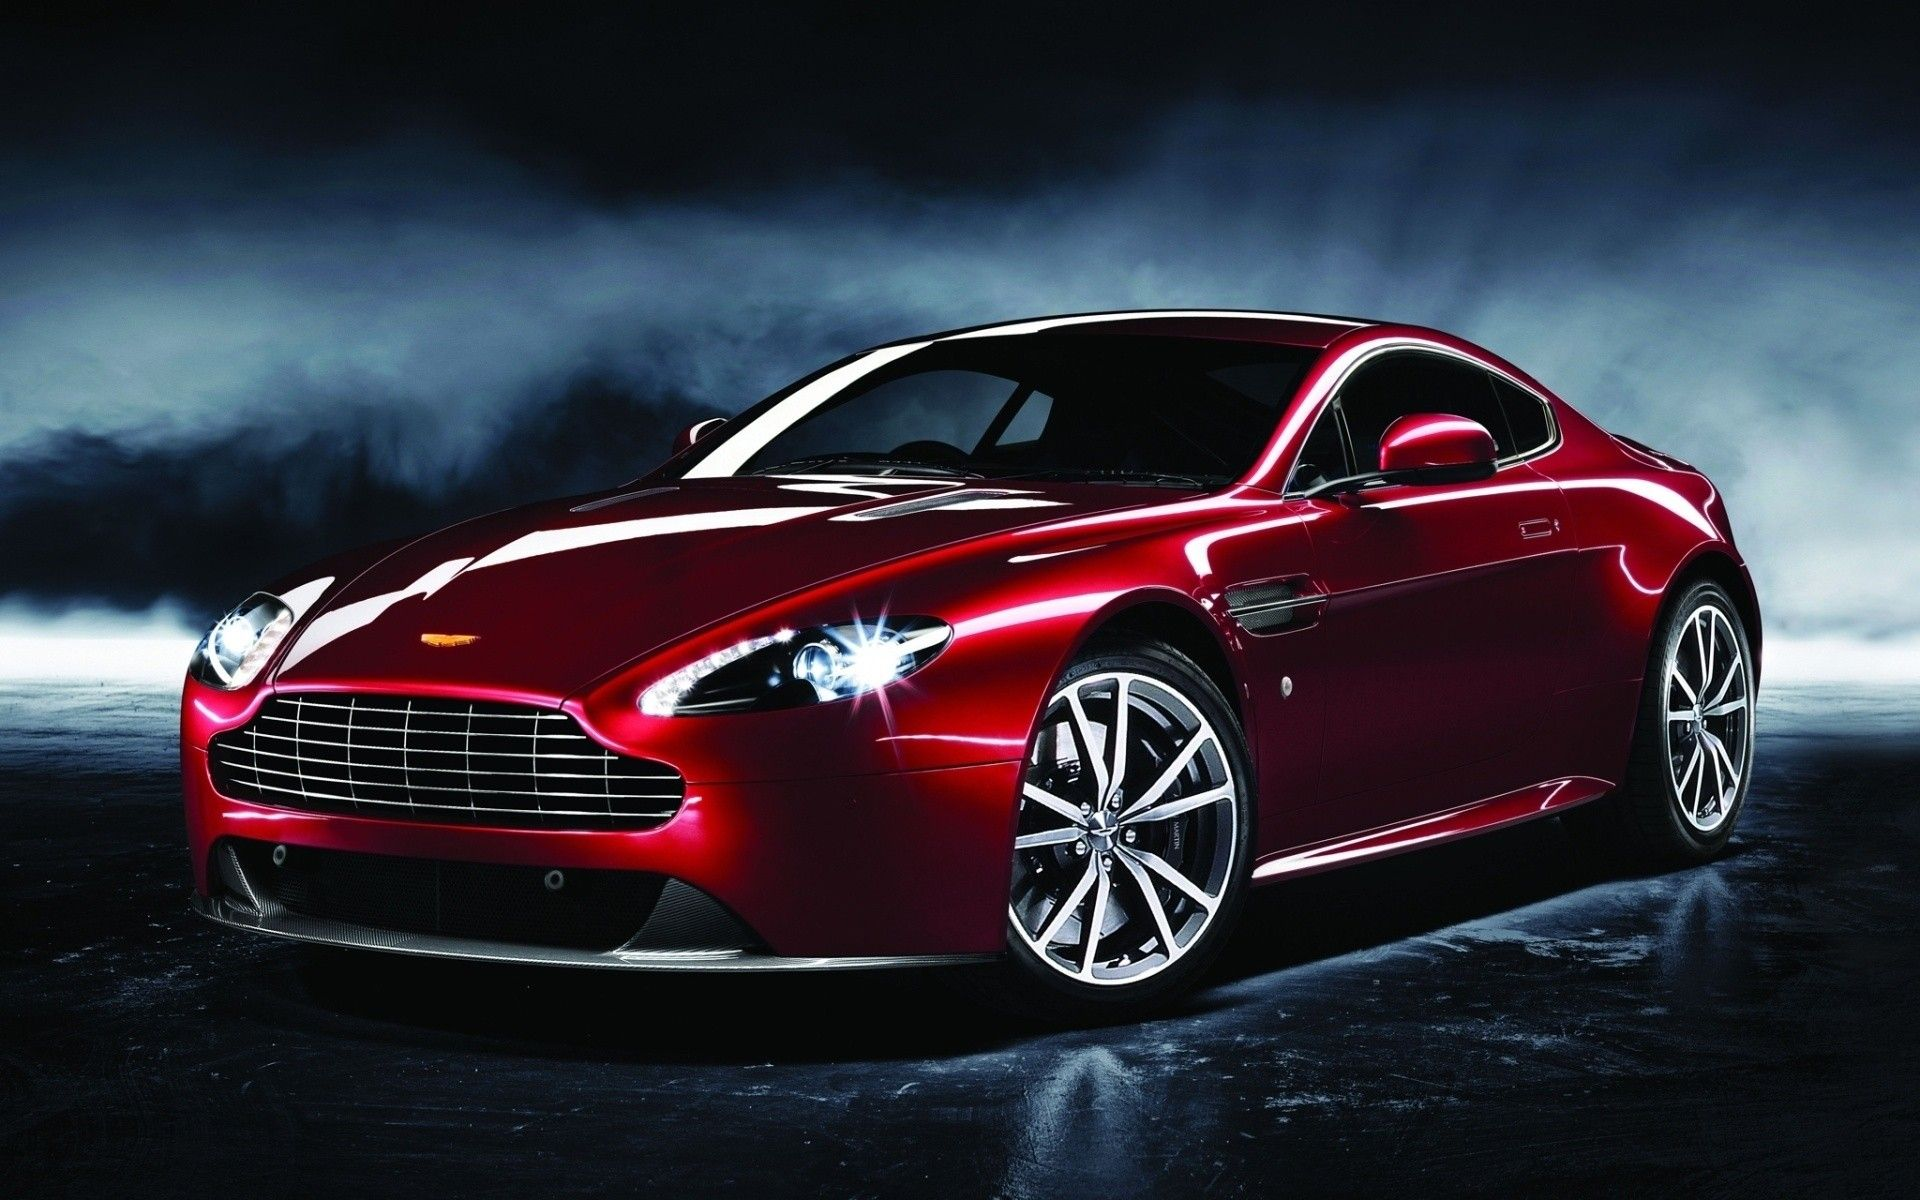 aston martin car prices 734 Aston Martin Car Prices